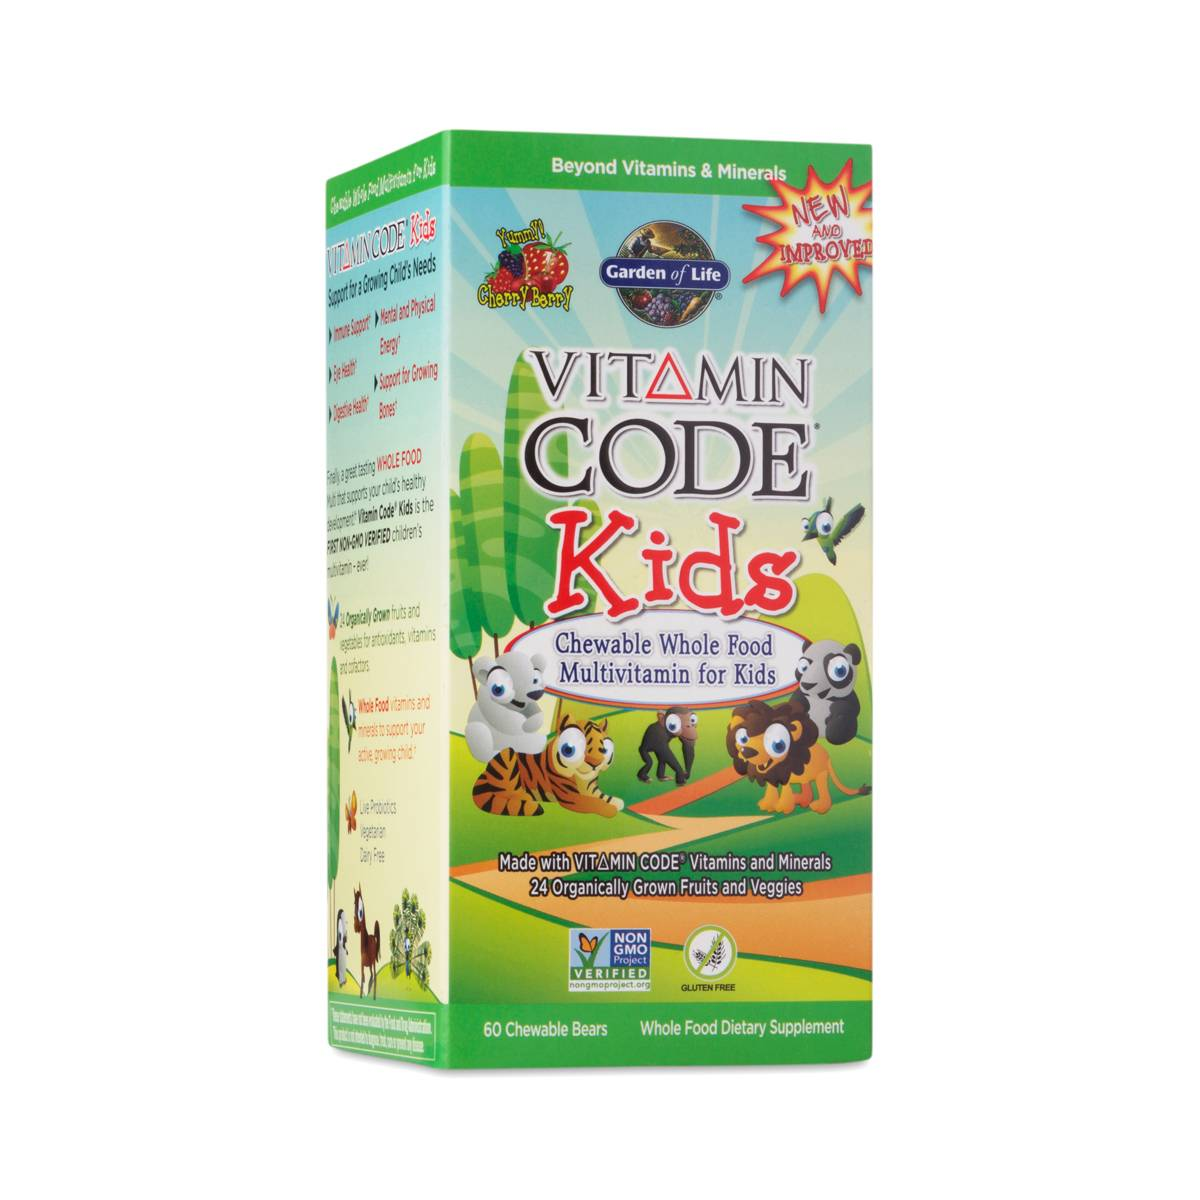 Vitamin code kid 39 s multivitamin by garden of life thrive - Garden of life vitamin code kids ...